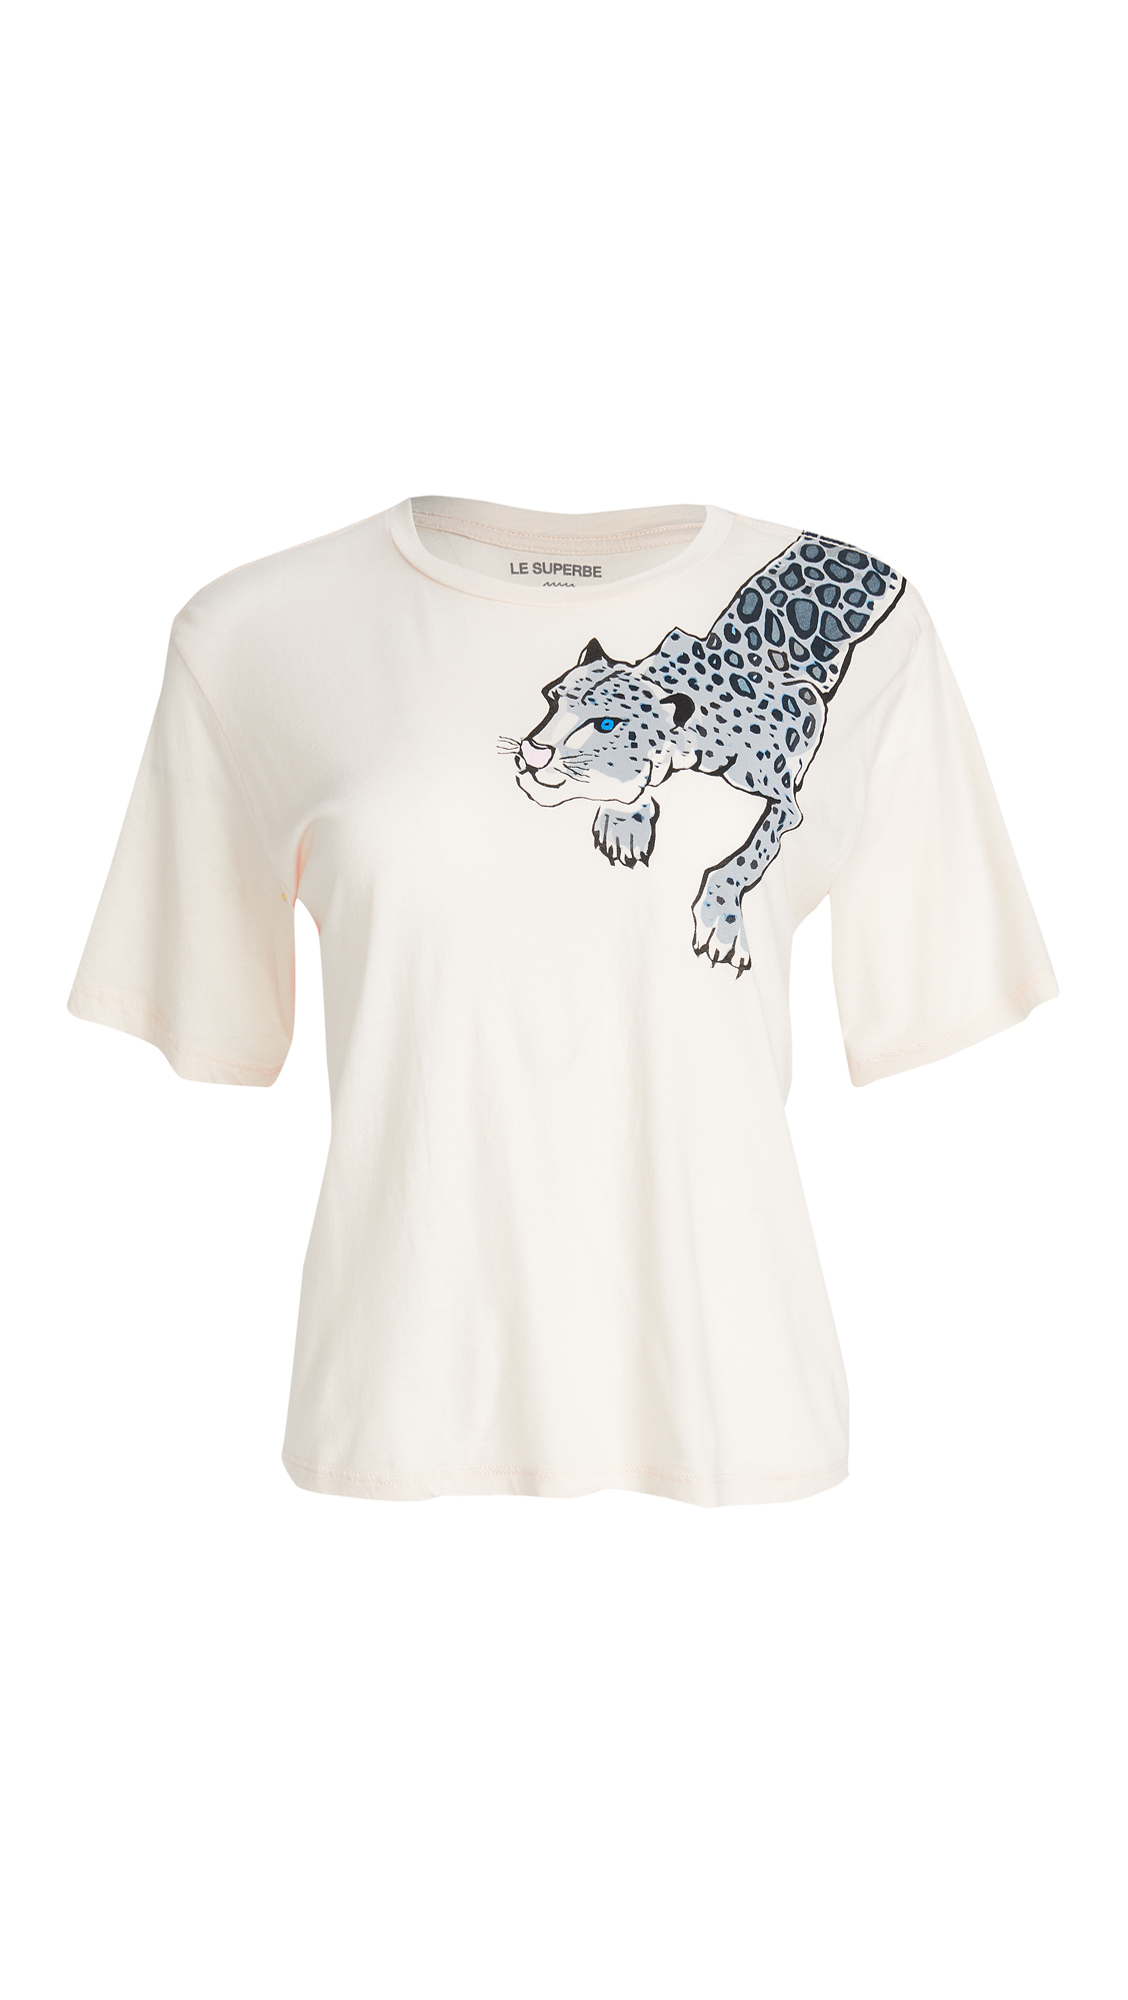 Le Superbe PAINTED LIL' LEOPARD TEE